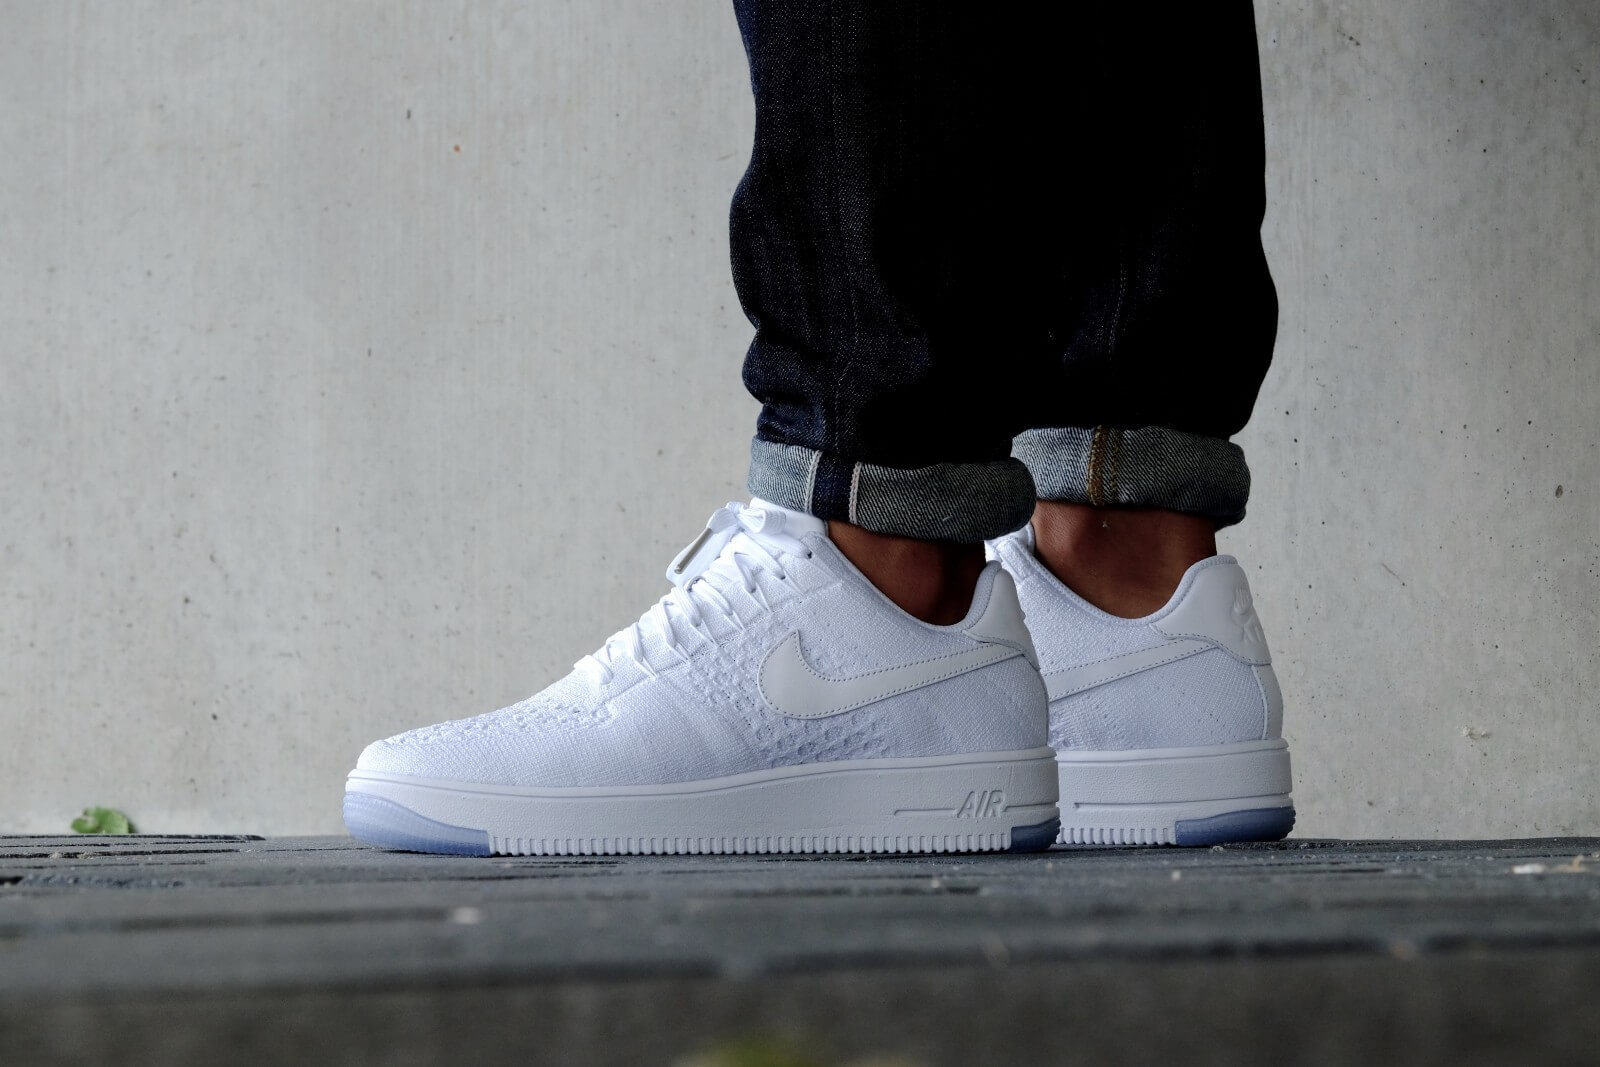 16214bf4867dbd Nike Air Force 1 Flyknit Low White Ice ukpinefurniture.co.uk